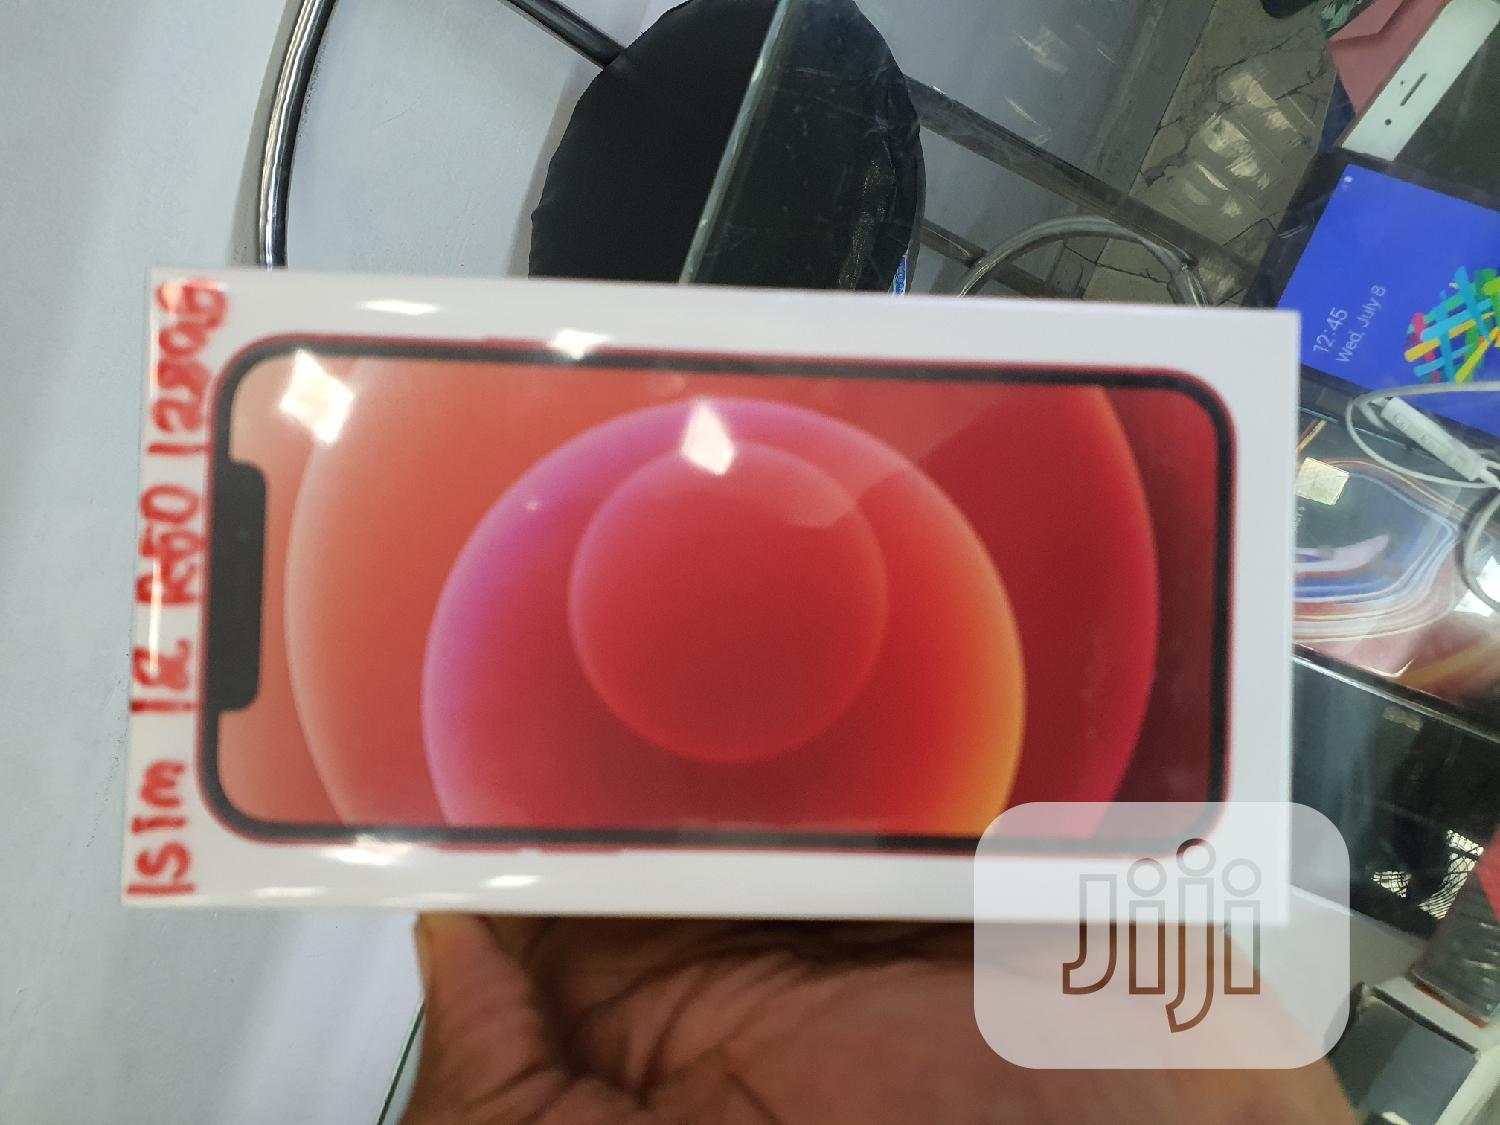 New Apple iPhone SE (2020) 128 GB Red | Mobile Phones for sale in Wuse 2, Abuja (FCT) State, Nigeria